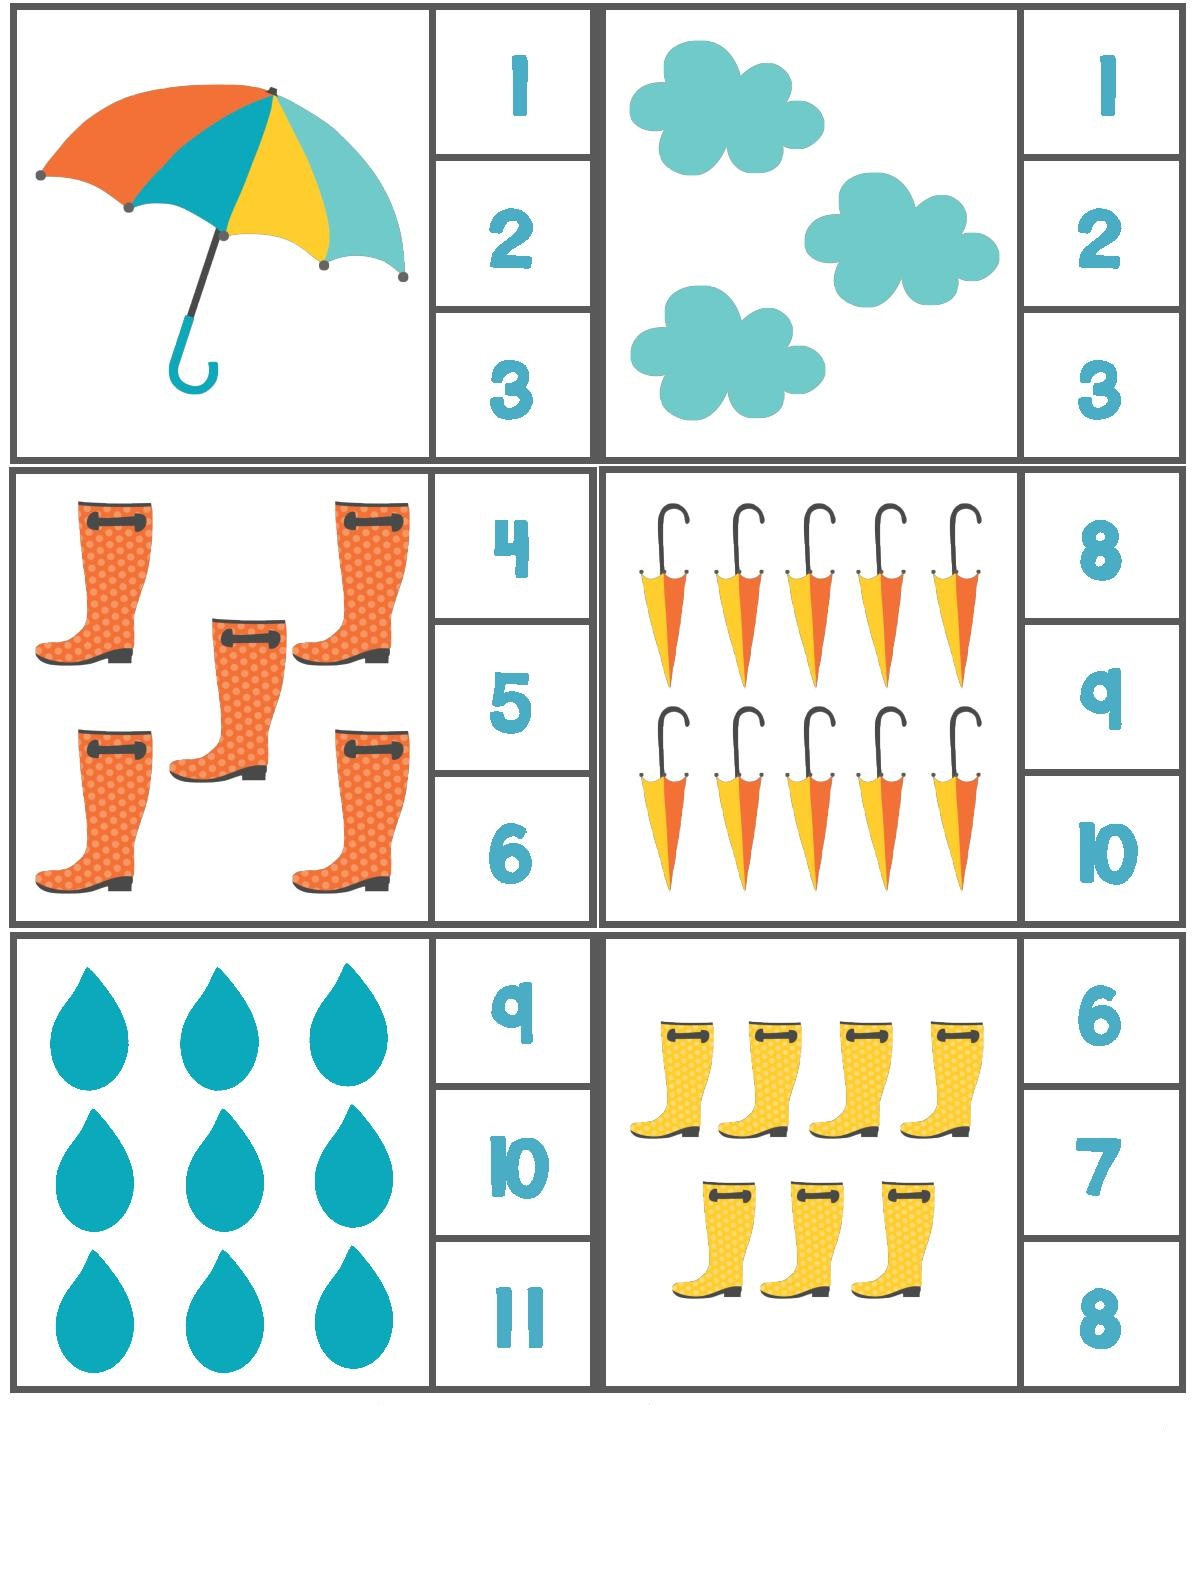 Rain Themed Counting Activity With Clothespin 3 on Preschool Writing Pages